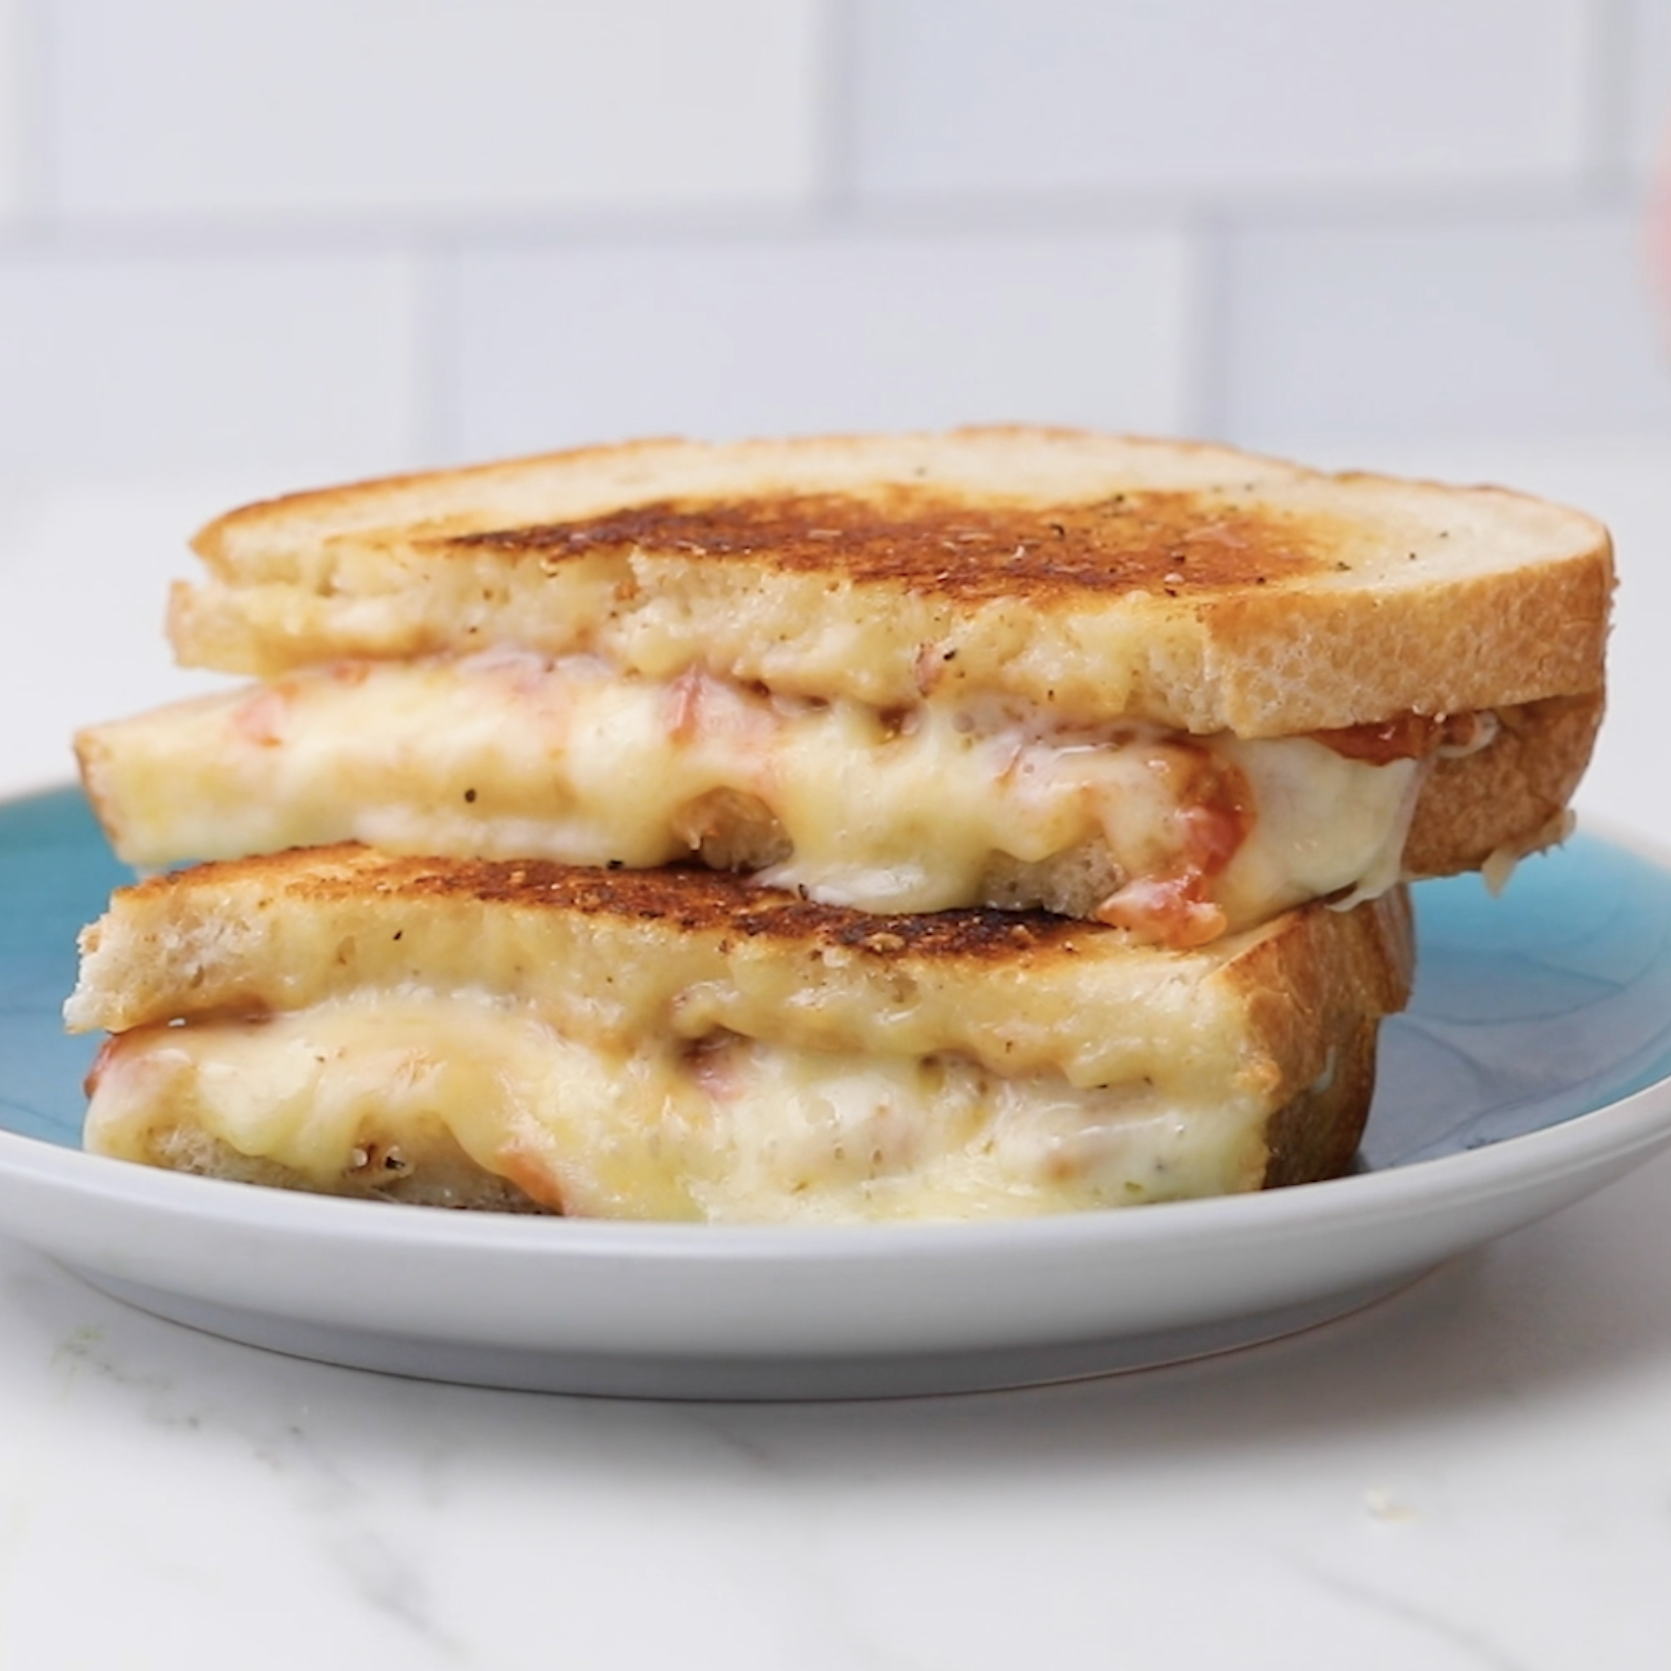 Grilled Cheese with Smoky Tomato Jam